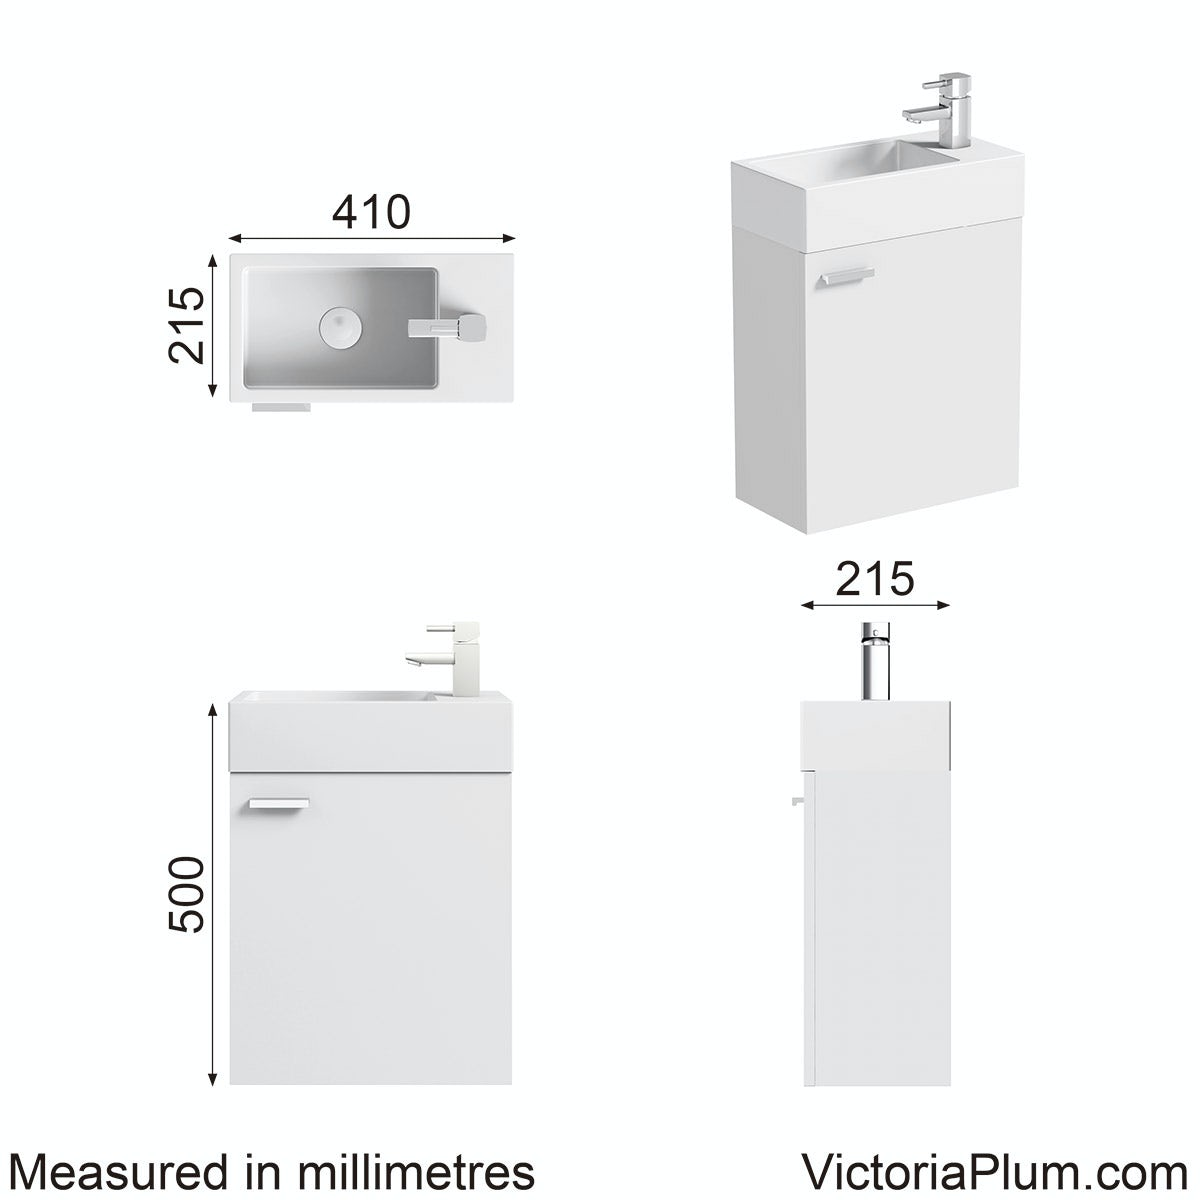 Dimensions for Orchard White wall hung cloakroom unit with resin basin 410mm